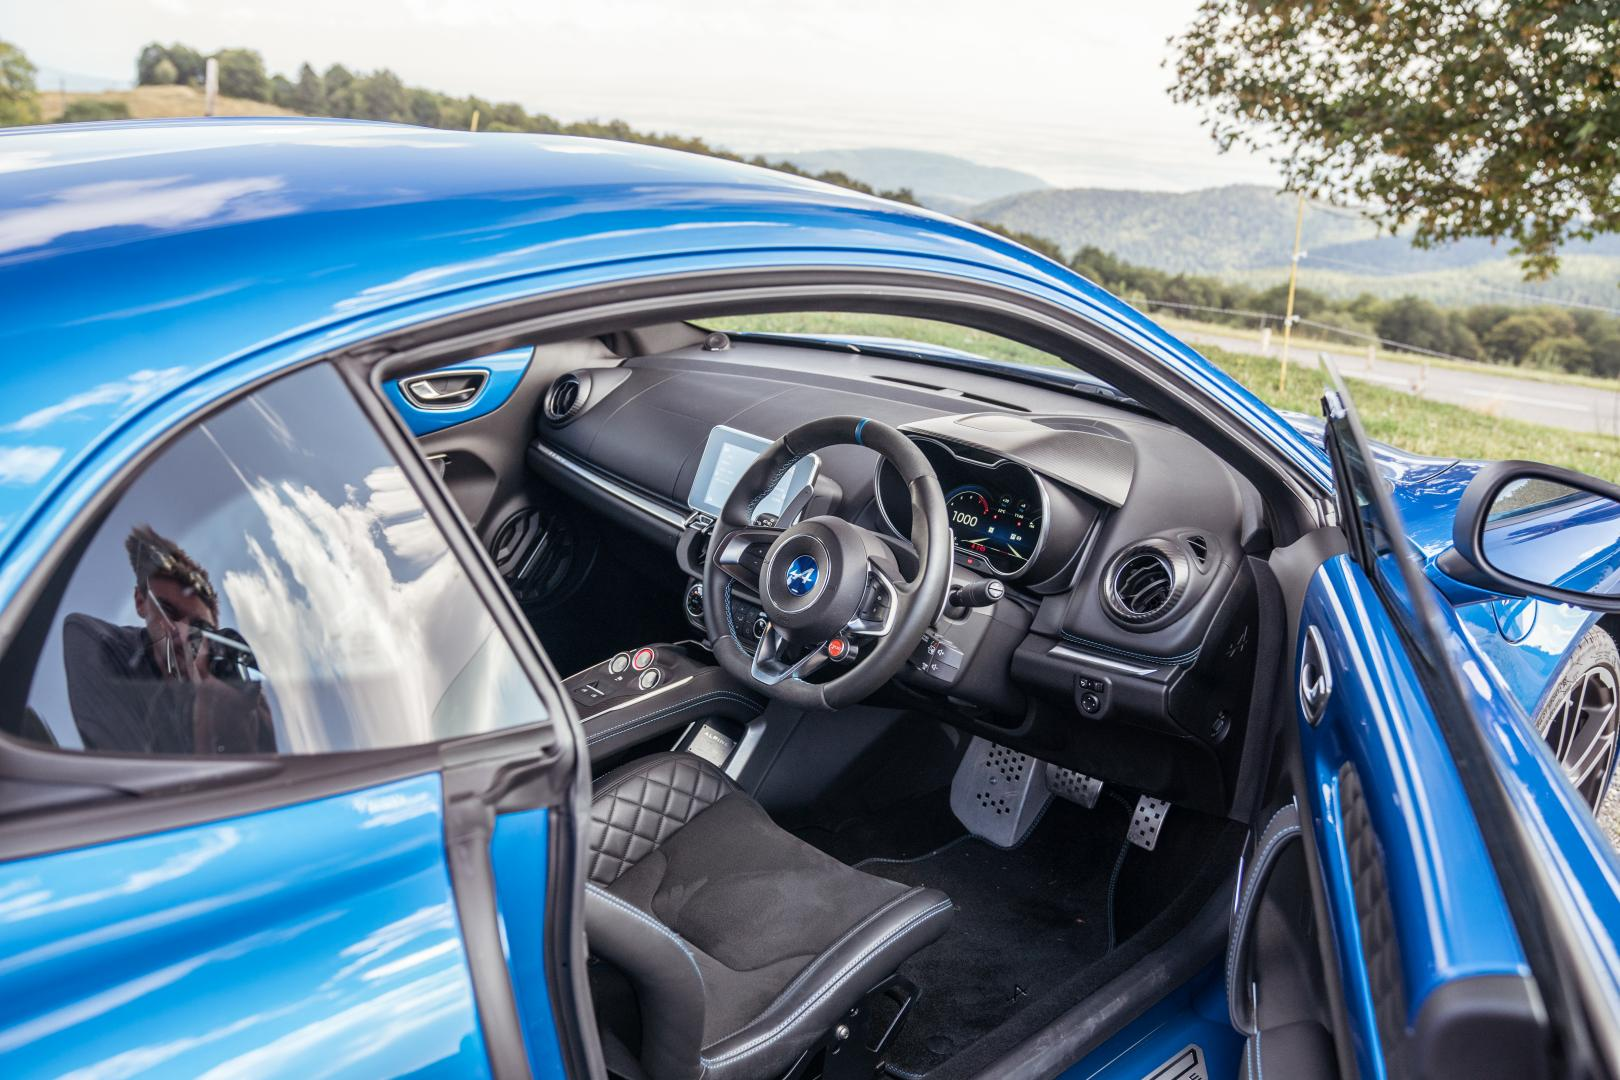 Alpine A110 cockpit